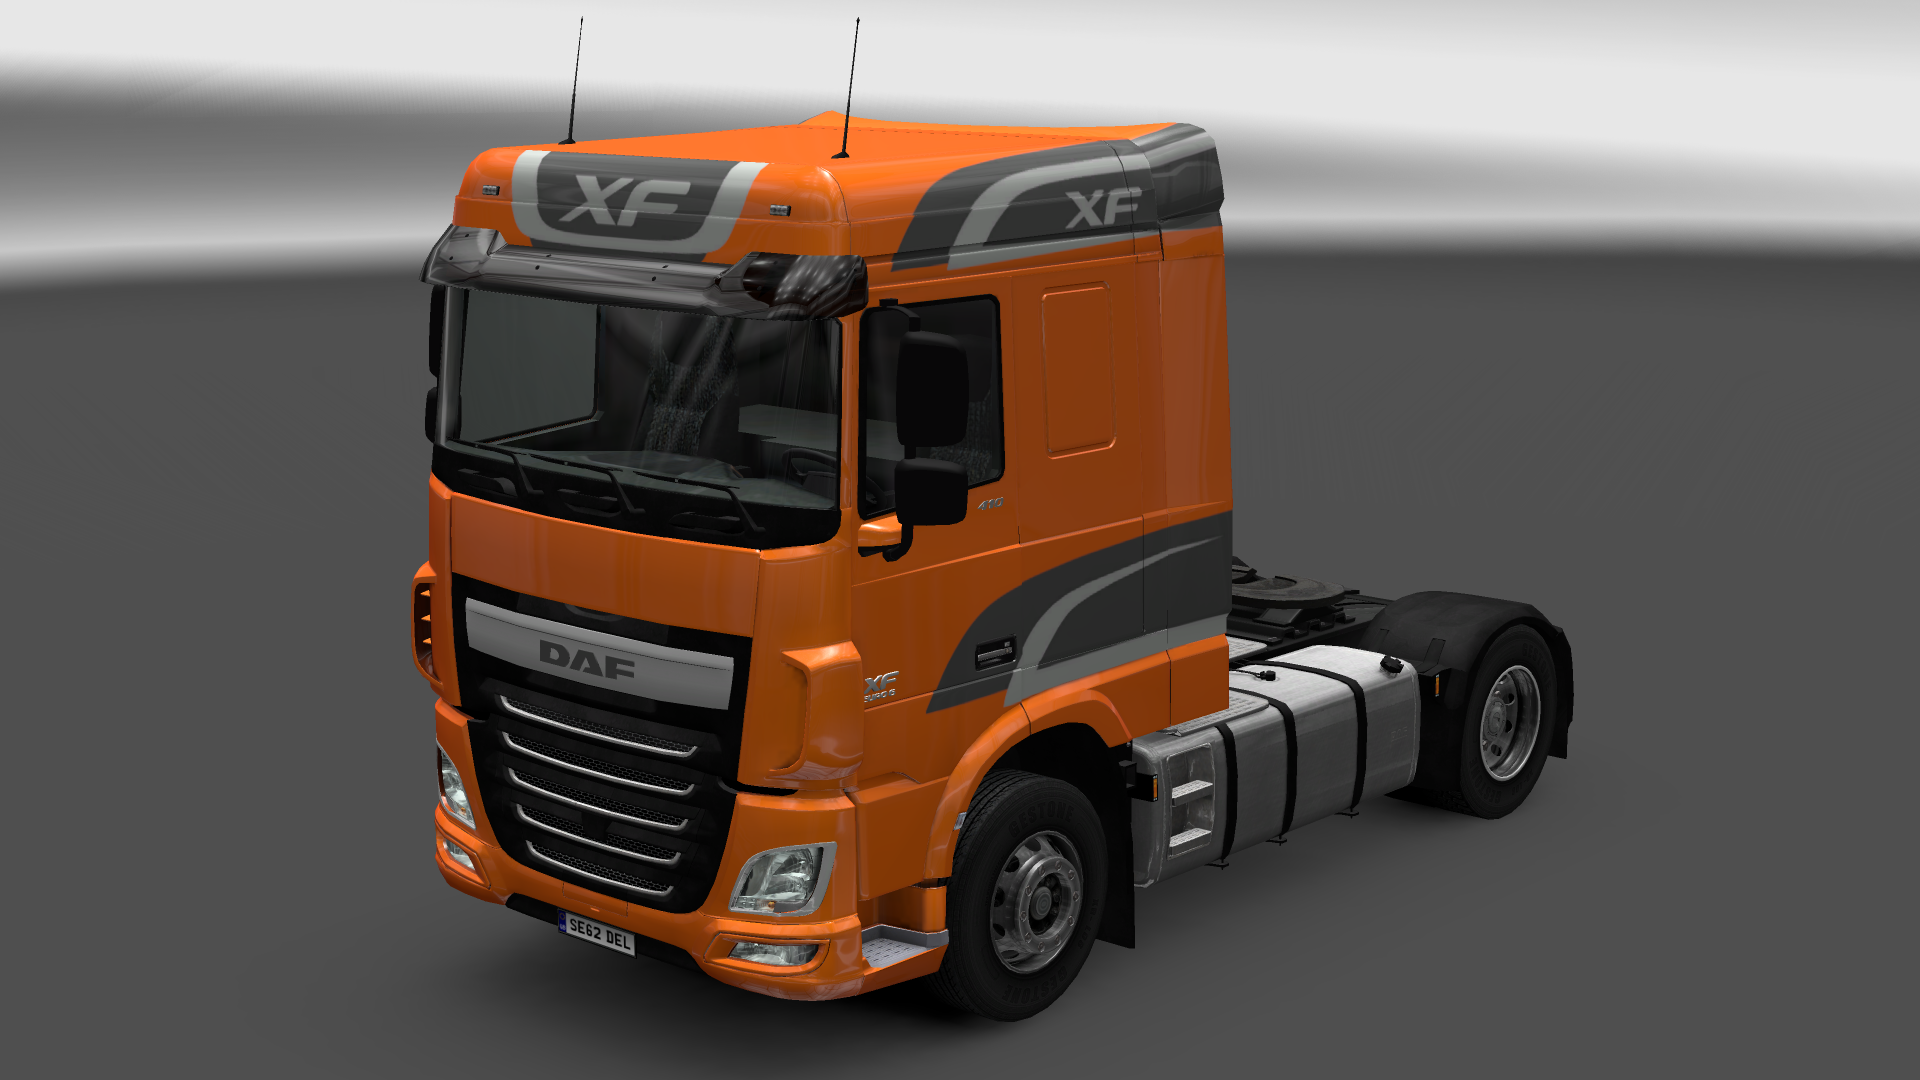 image daf xf euro 6 paint truck simulator. Black Bedroom Furniture Sets. Home Design Ideas